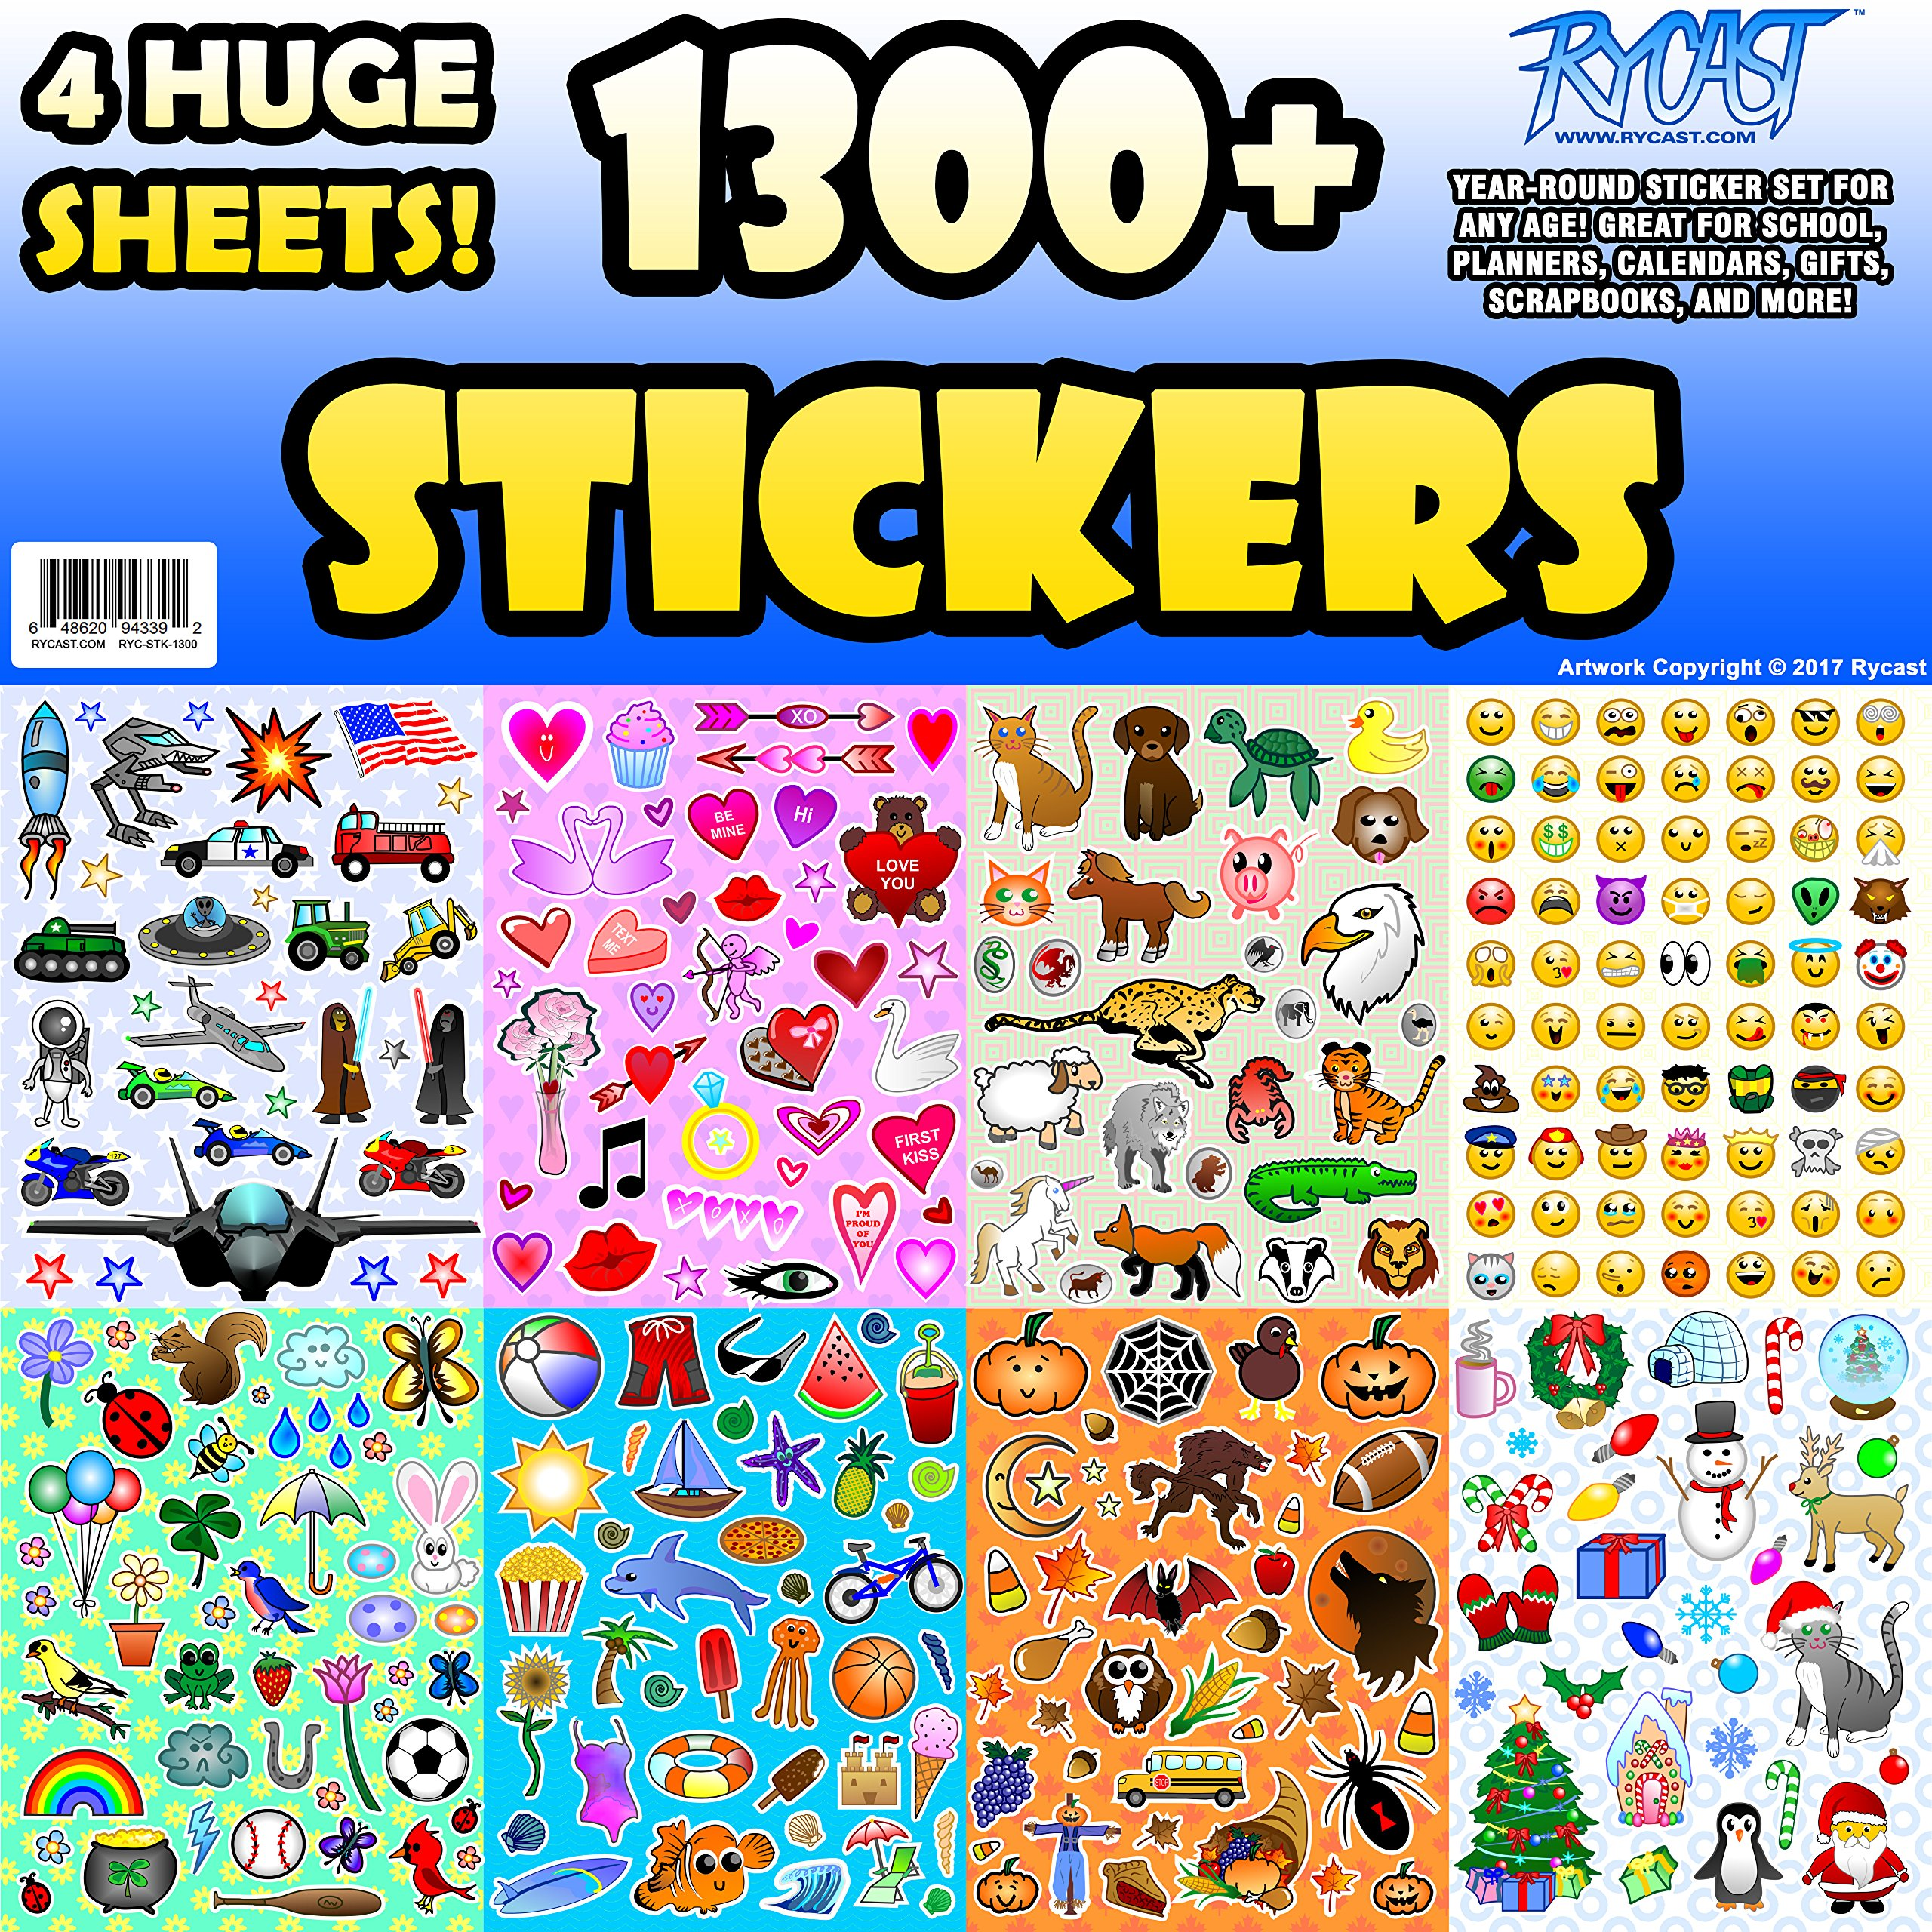 Sticker Sheet Assortment Set, 1300+ Stickers, Year Round Variety Pack by Rycast, for Children, Kids, Parents, Teachers, School, Crafts, Calendars, Planners, Scrapbooks, Emoji